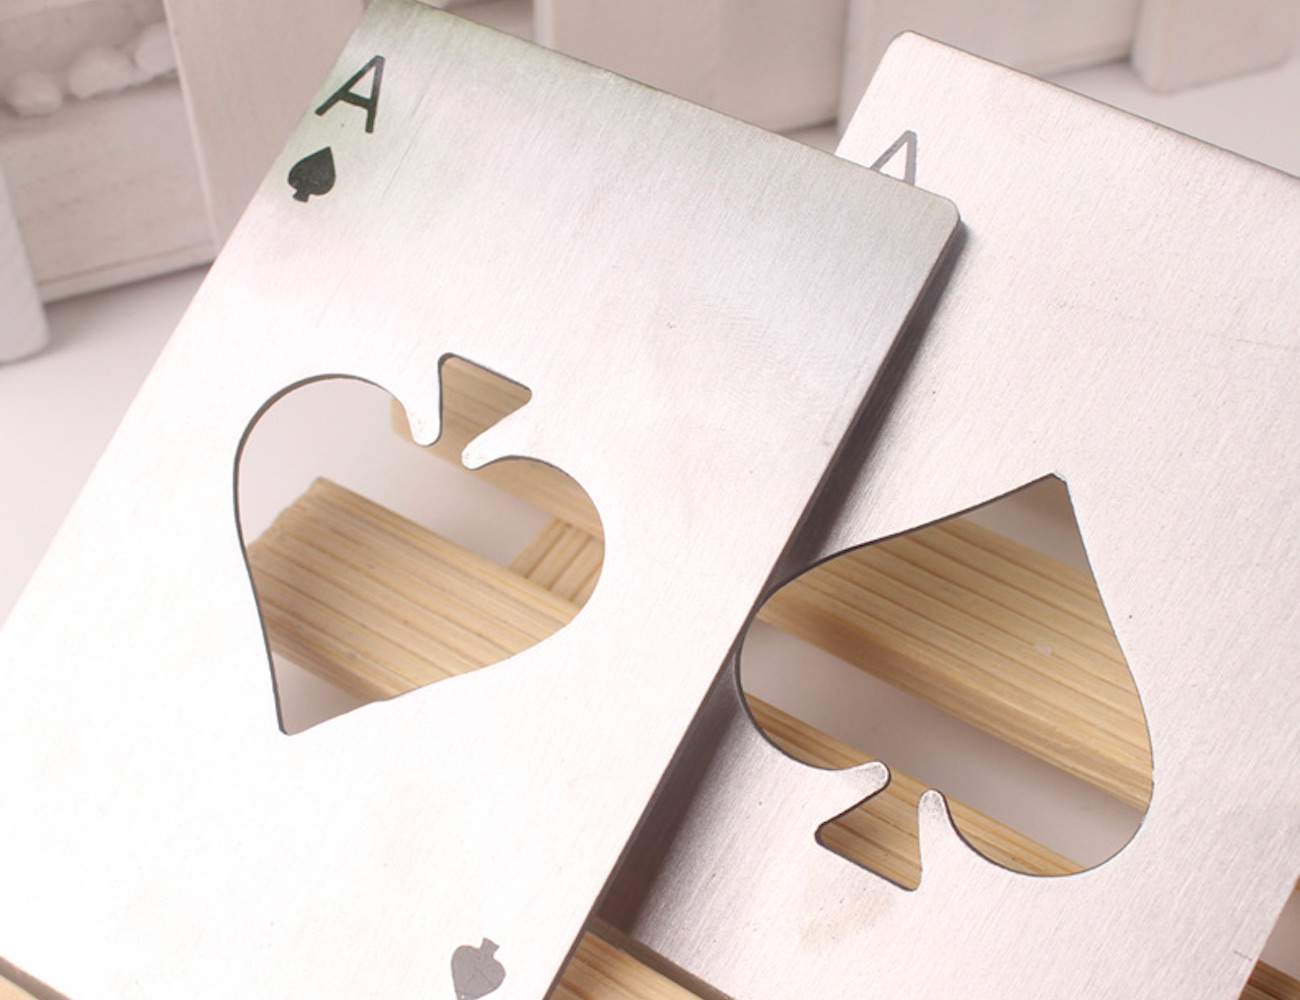 Steel Playing Card Bottle Opener is more than meets the eye